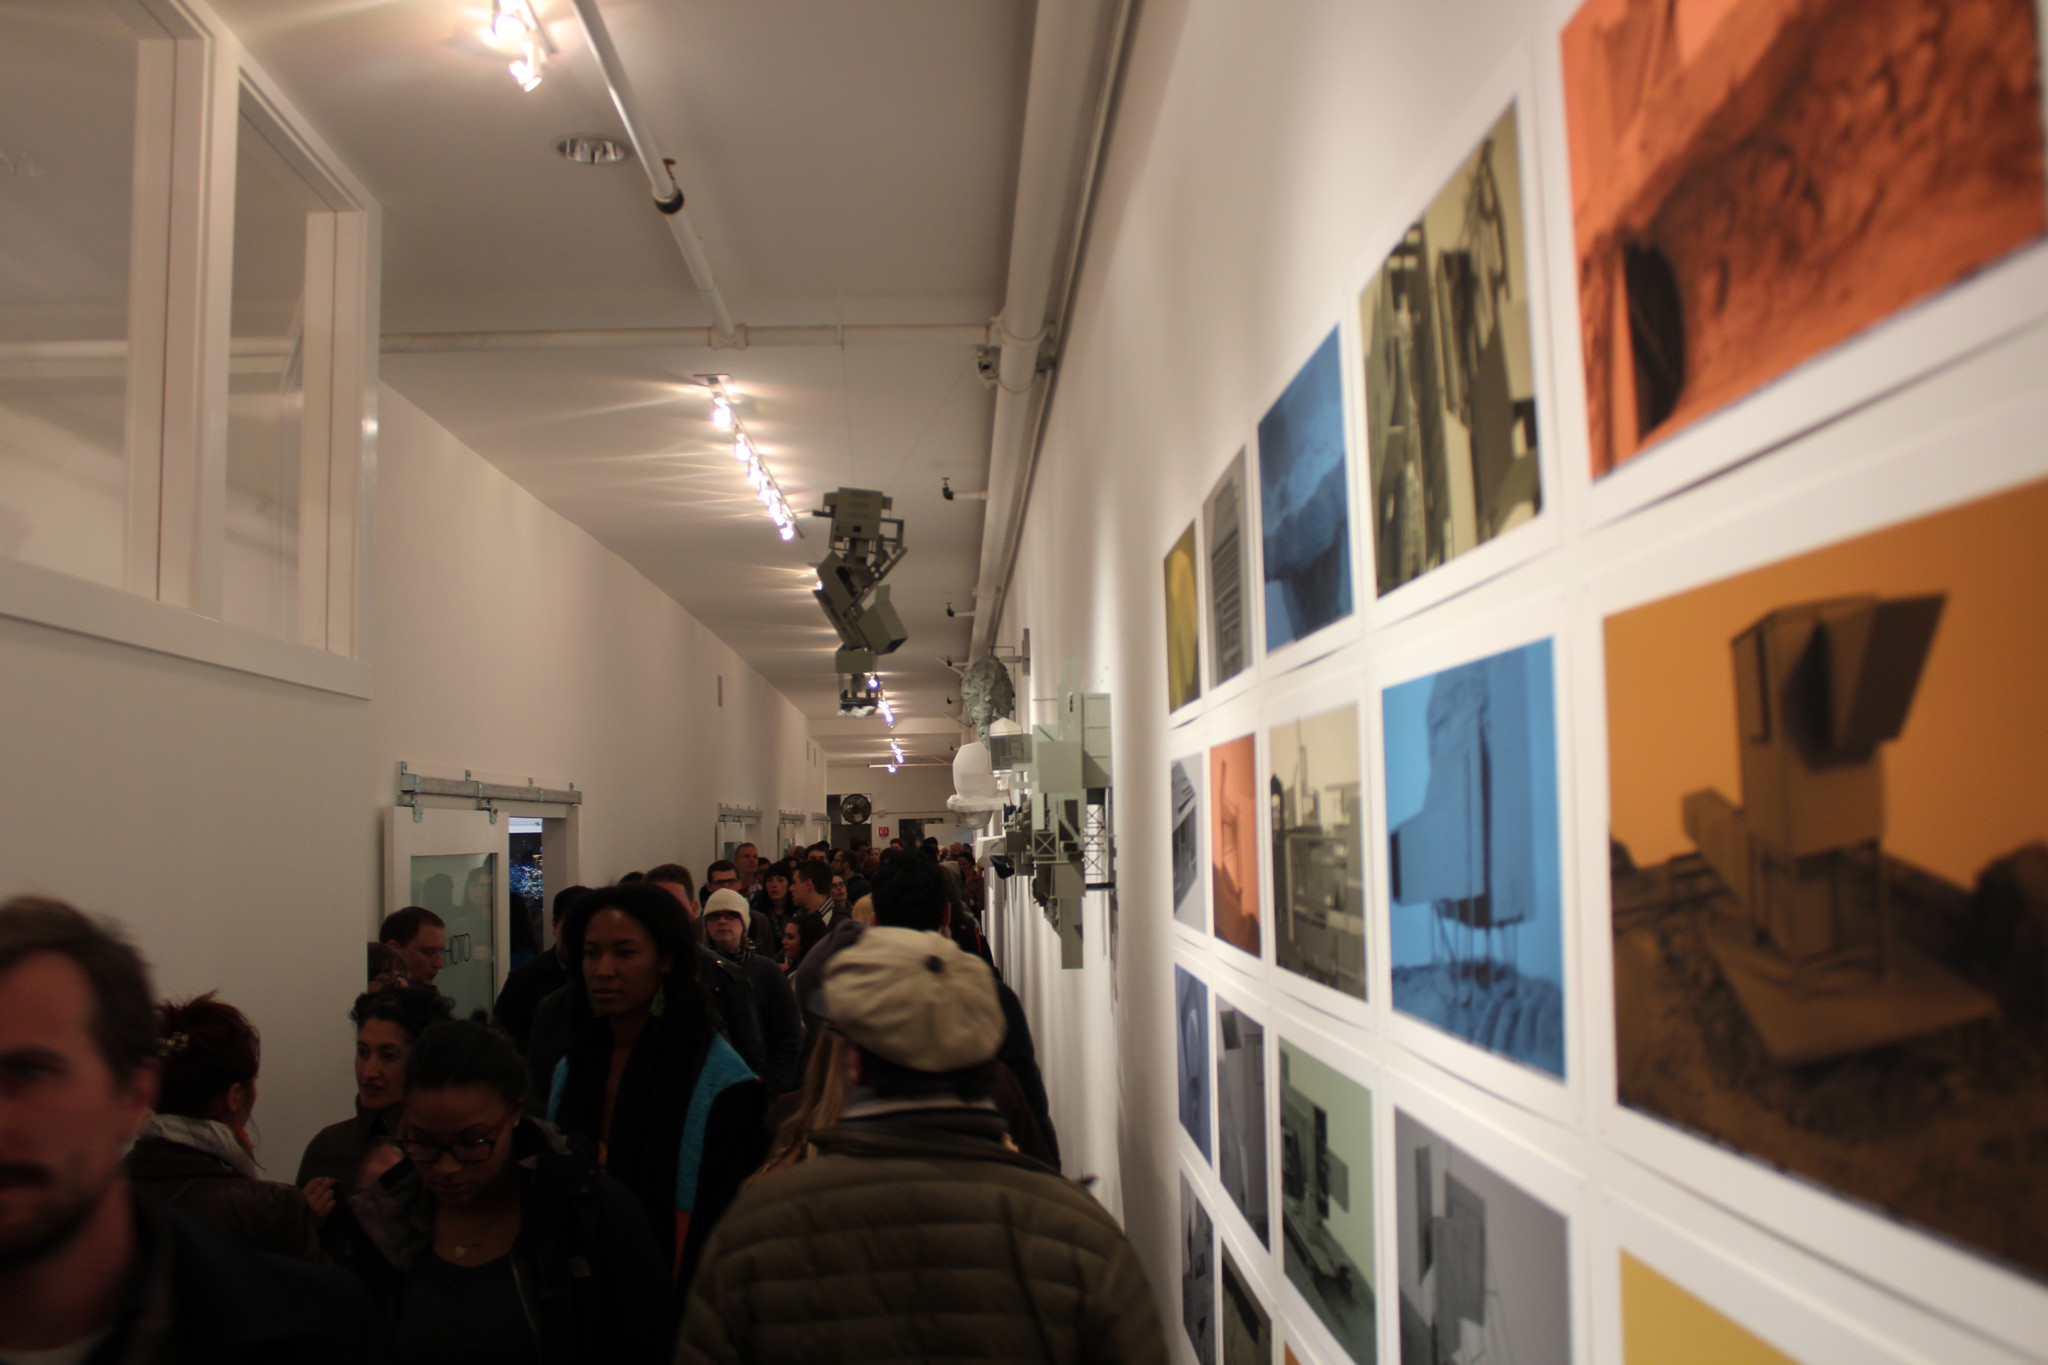 Photo: All 10 art galleries and mixed use spaces on 25th Street were this packed the night of April 6, 2012.